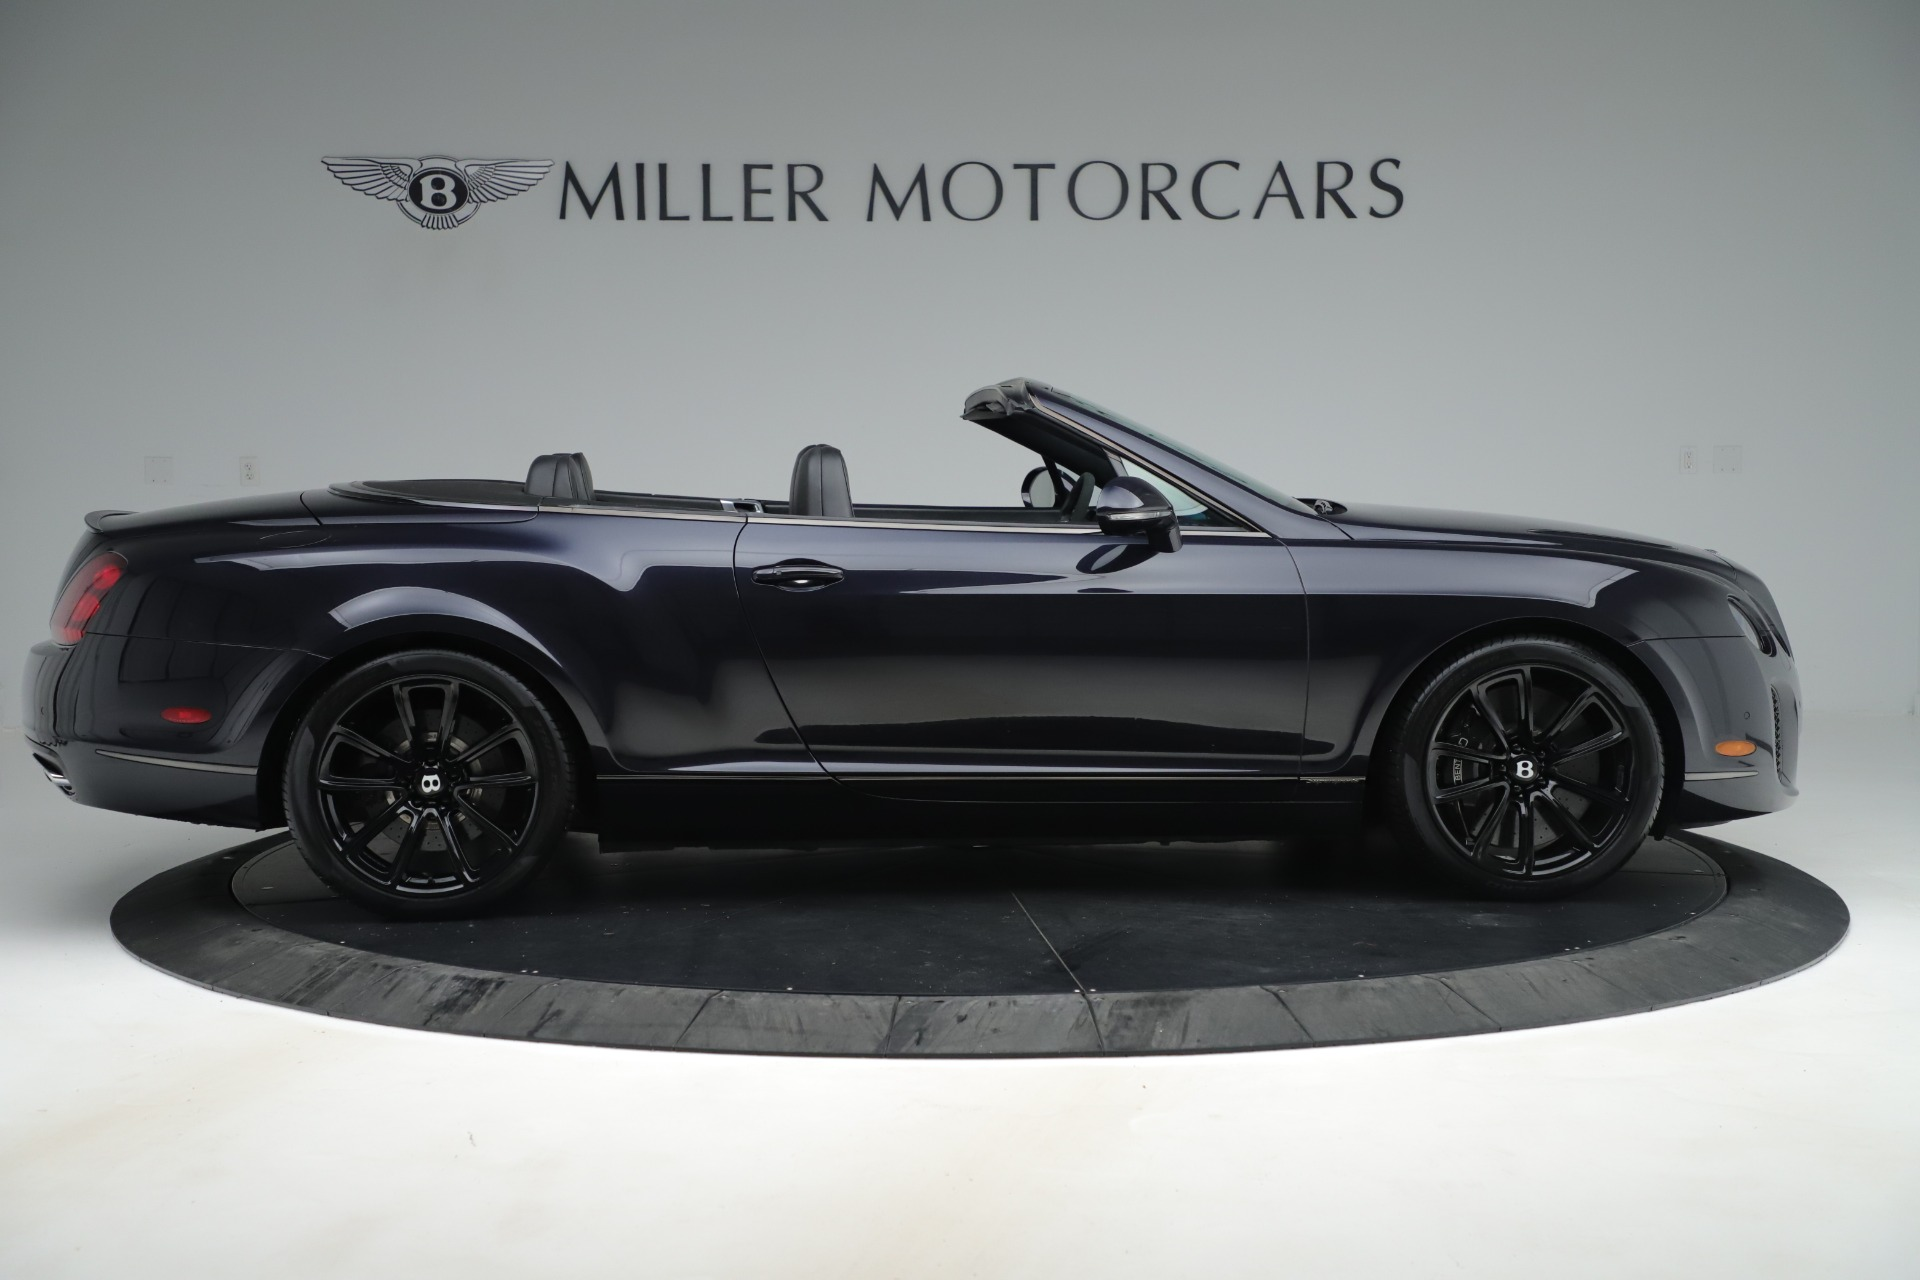 Used 2012 Bentley Continental Supersports Supersports For Sale In Westport, CT 3214_p9